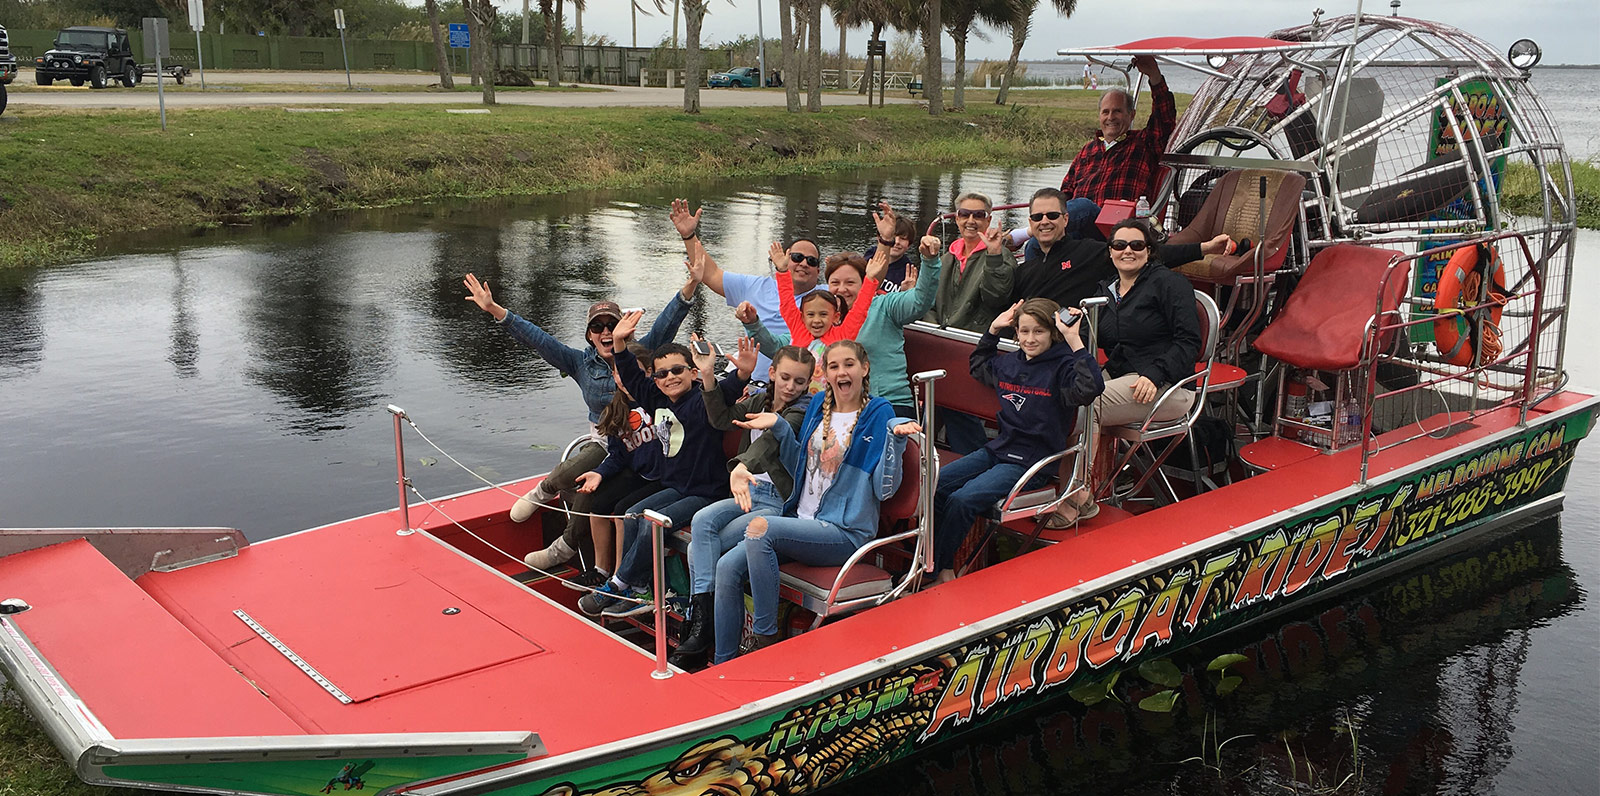 Florida's Premier Airboat Tours & Ride Attractions | Airboat